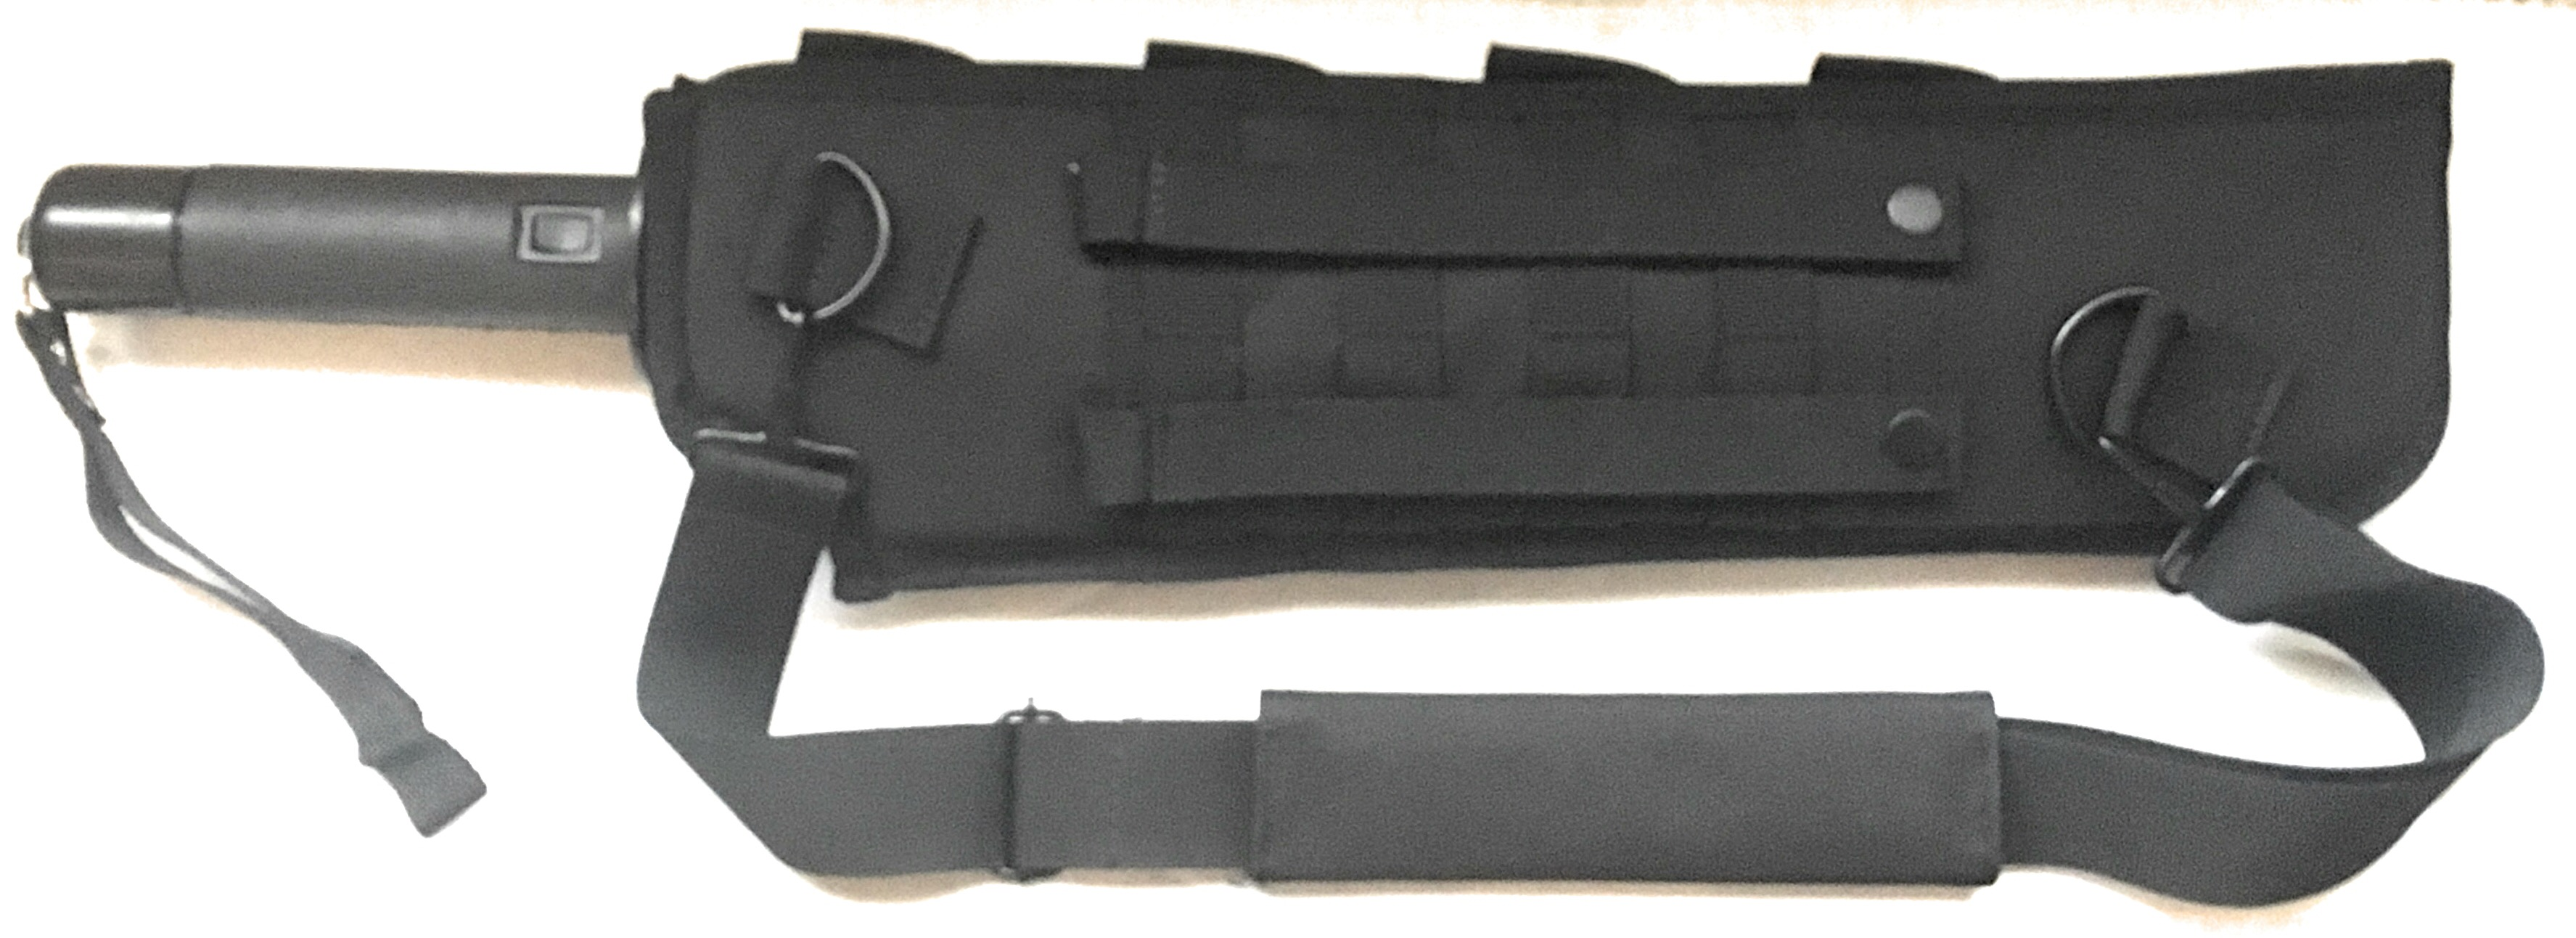 THE O-MEGA STUN BATON STUN GUN SHEATH (BLACK)